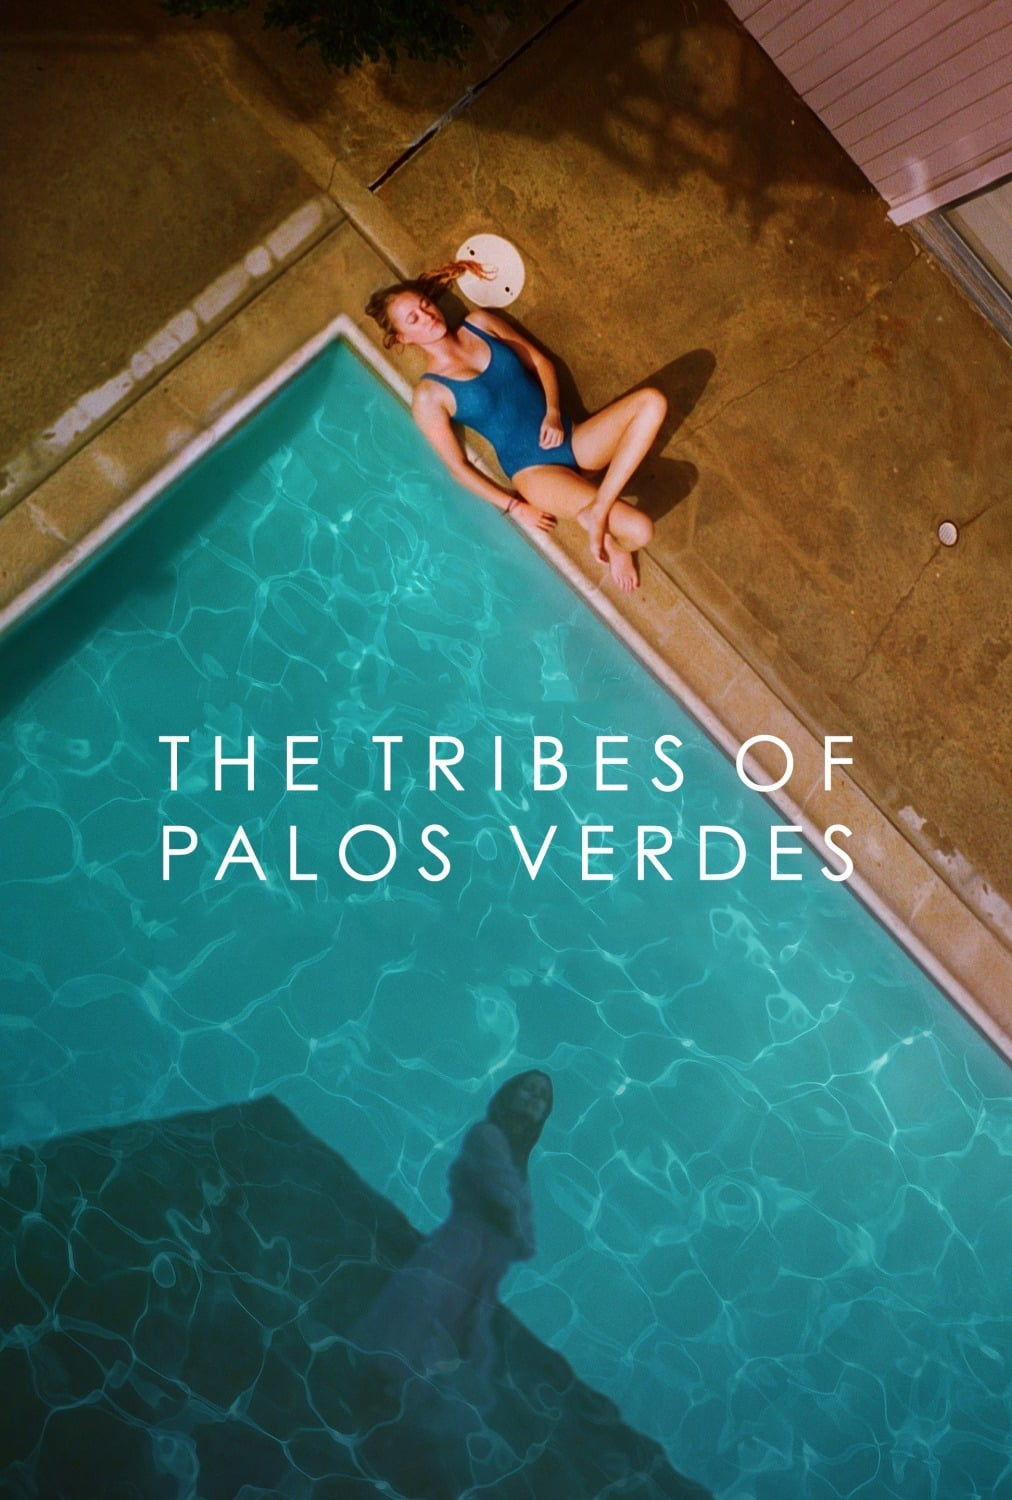 image for The Tribes of Palos Verdes